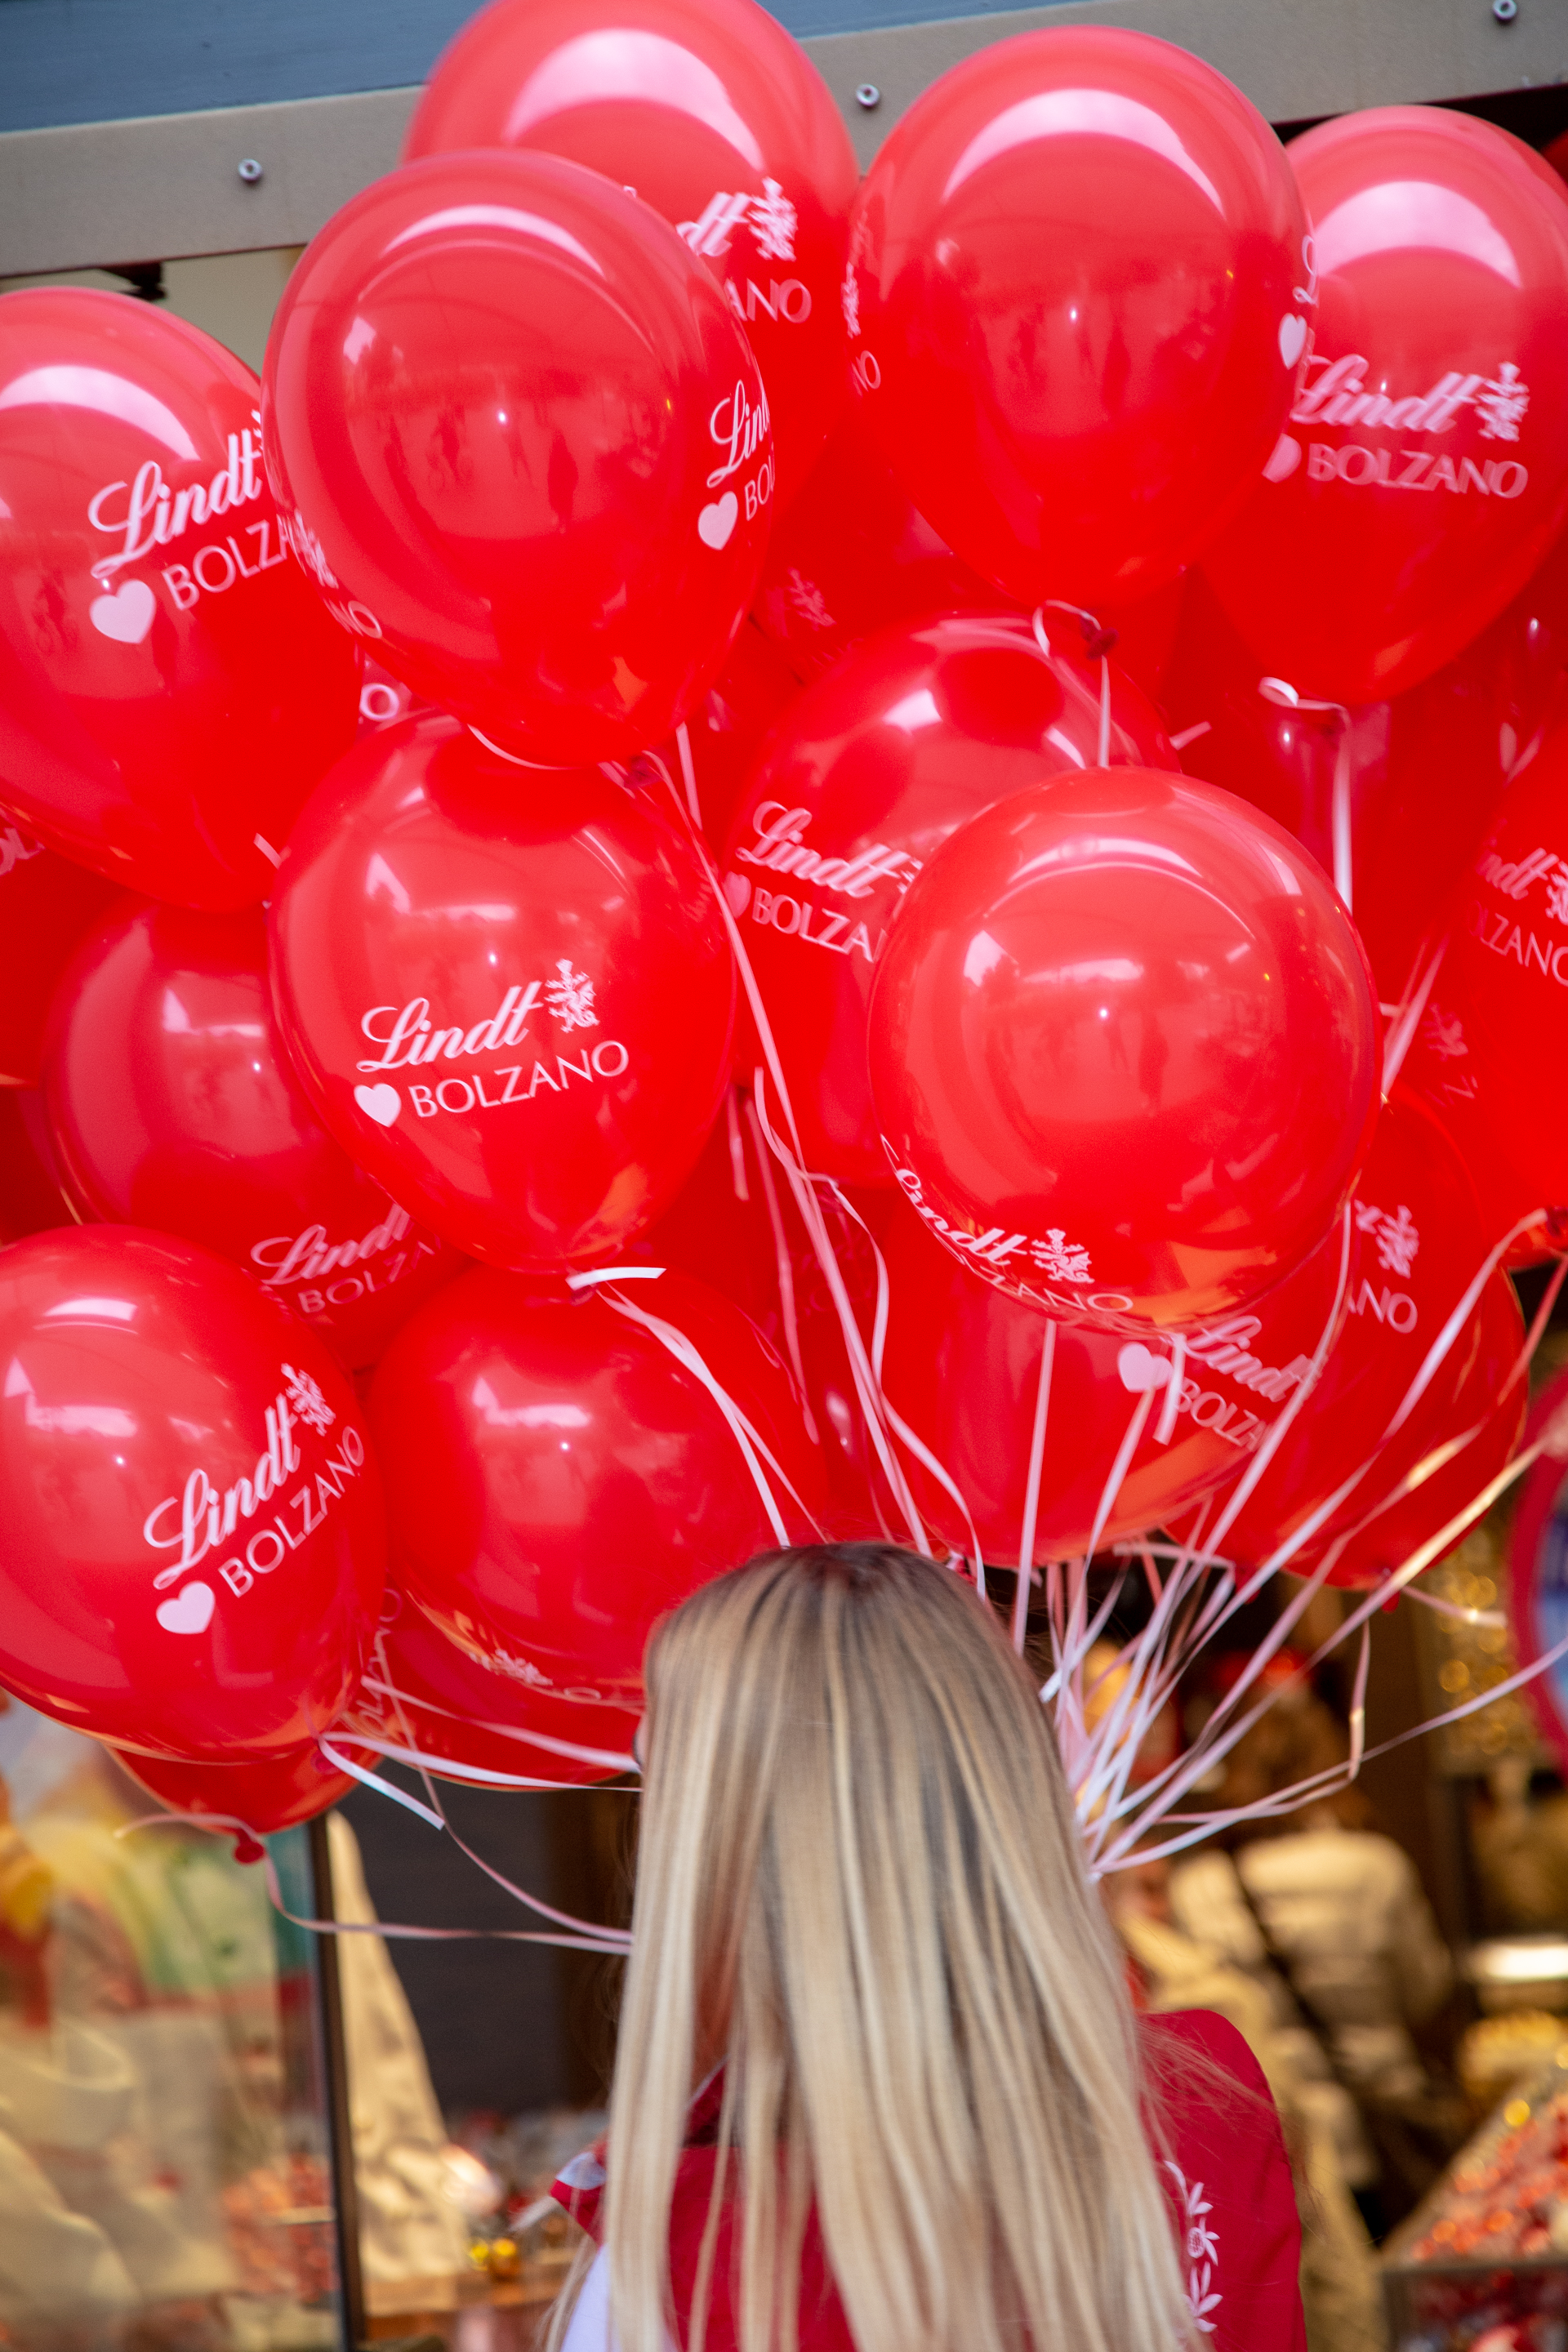 lindt_shop_bolzano_evento_1